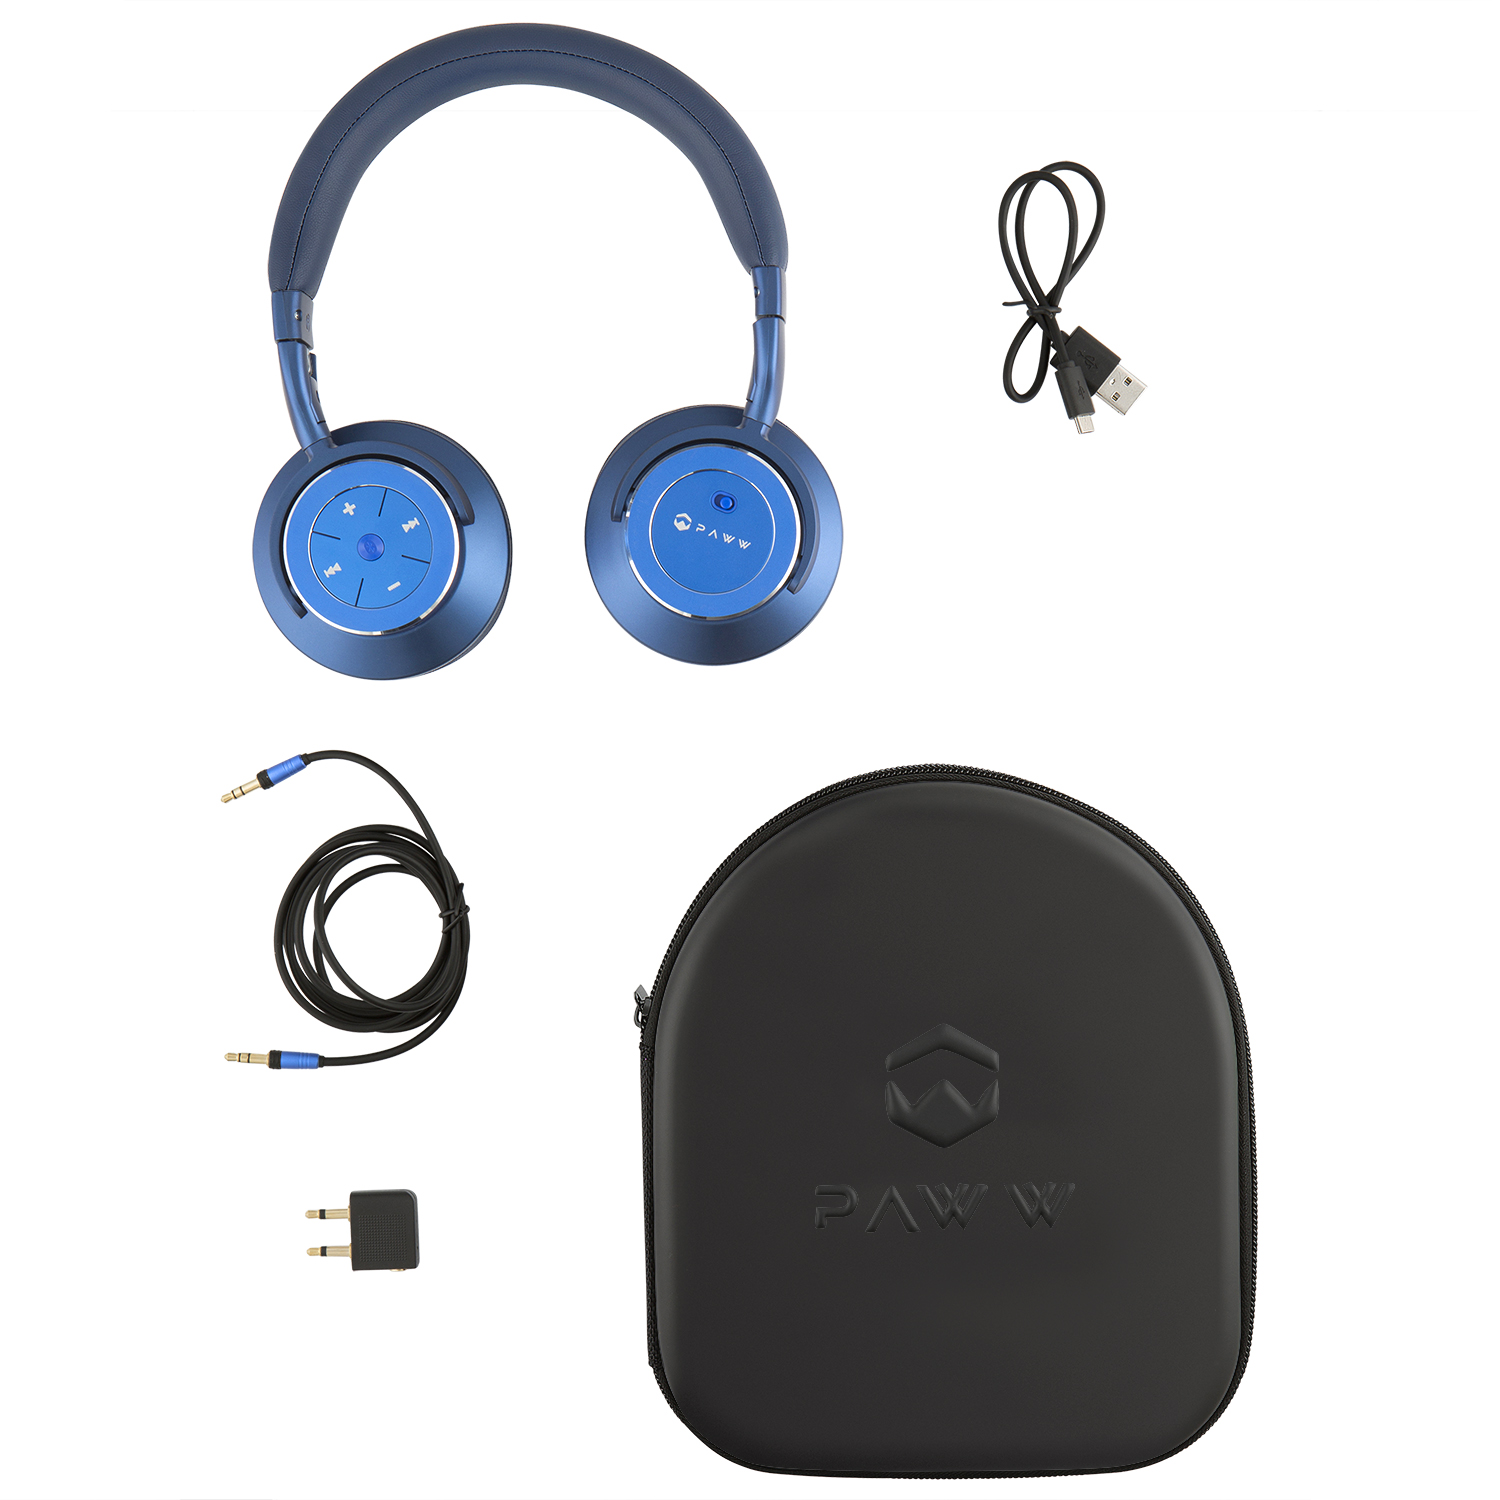 7a3355432da Paww WaveSound 3 Bluetooth 5.0 Over-Ear Travel Active Noise Cancelling  Headphones - aptX Low Latency - ShareMe Function - Digital Assistant -  Connect ...